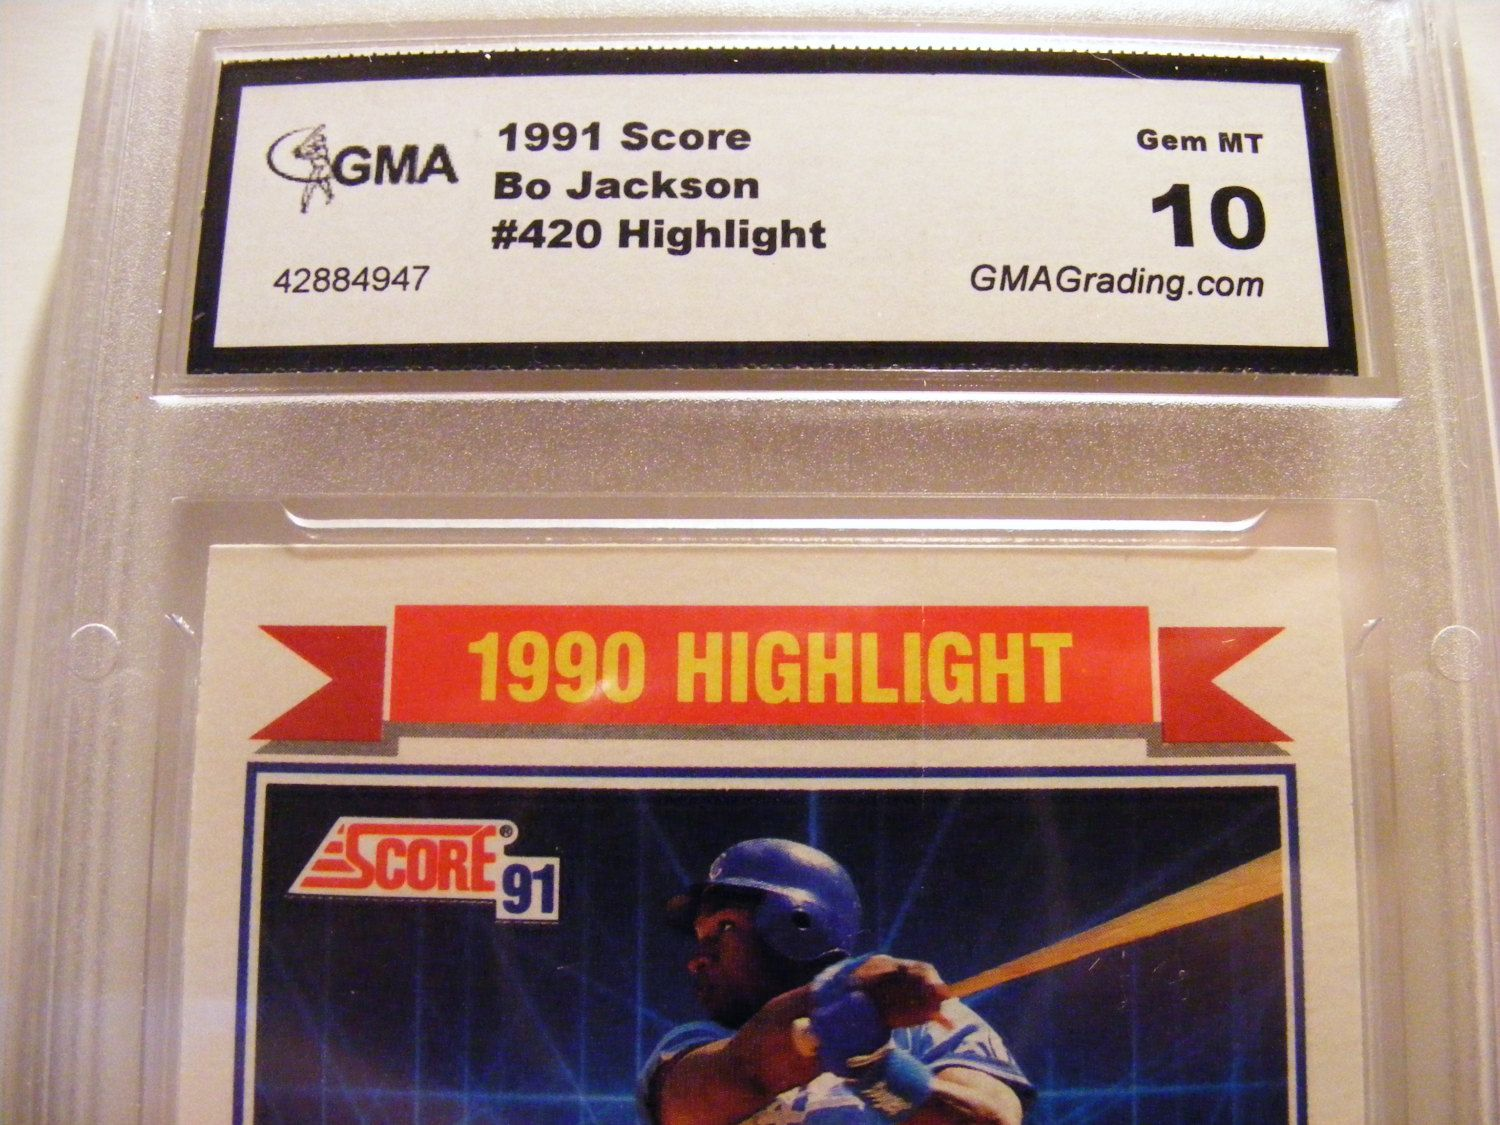 Vintage Baseball Card 1991 Score Bo Jackson 420 Highlight Gma